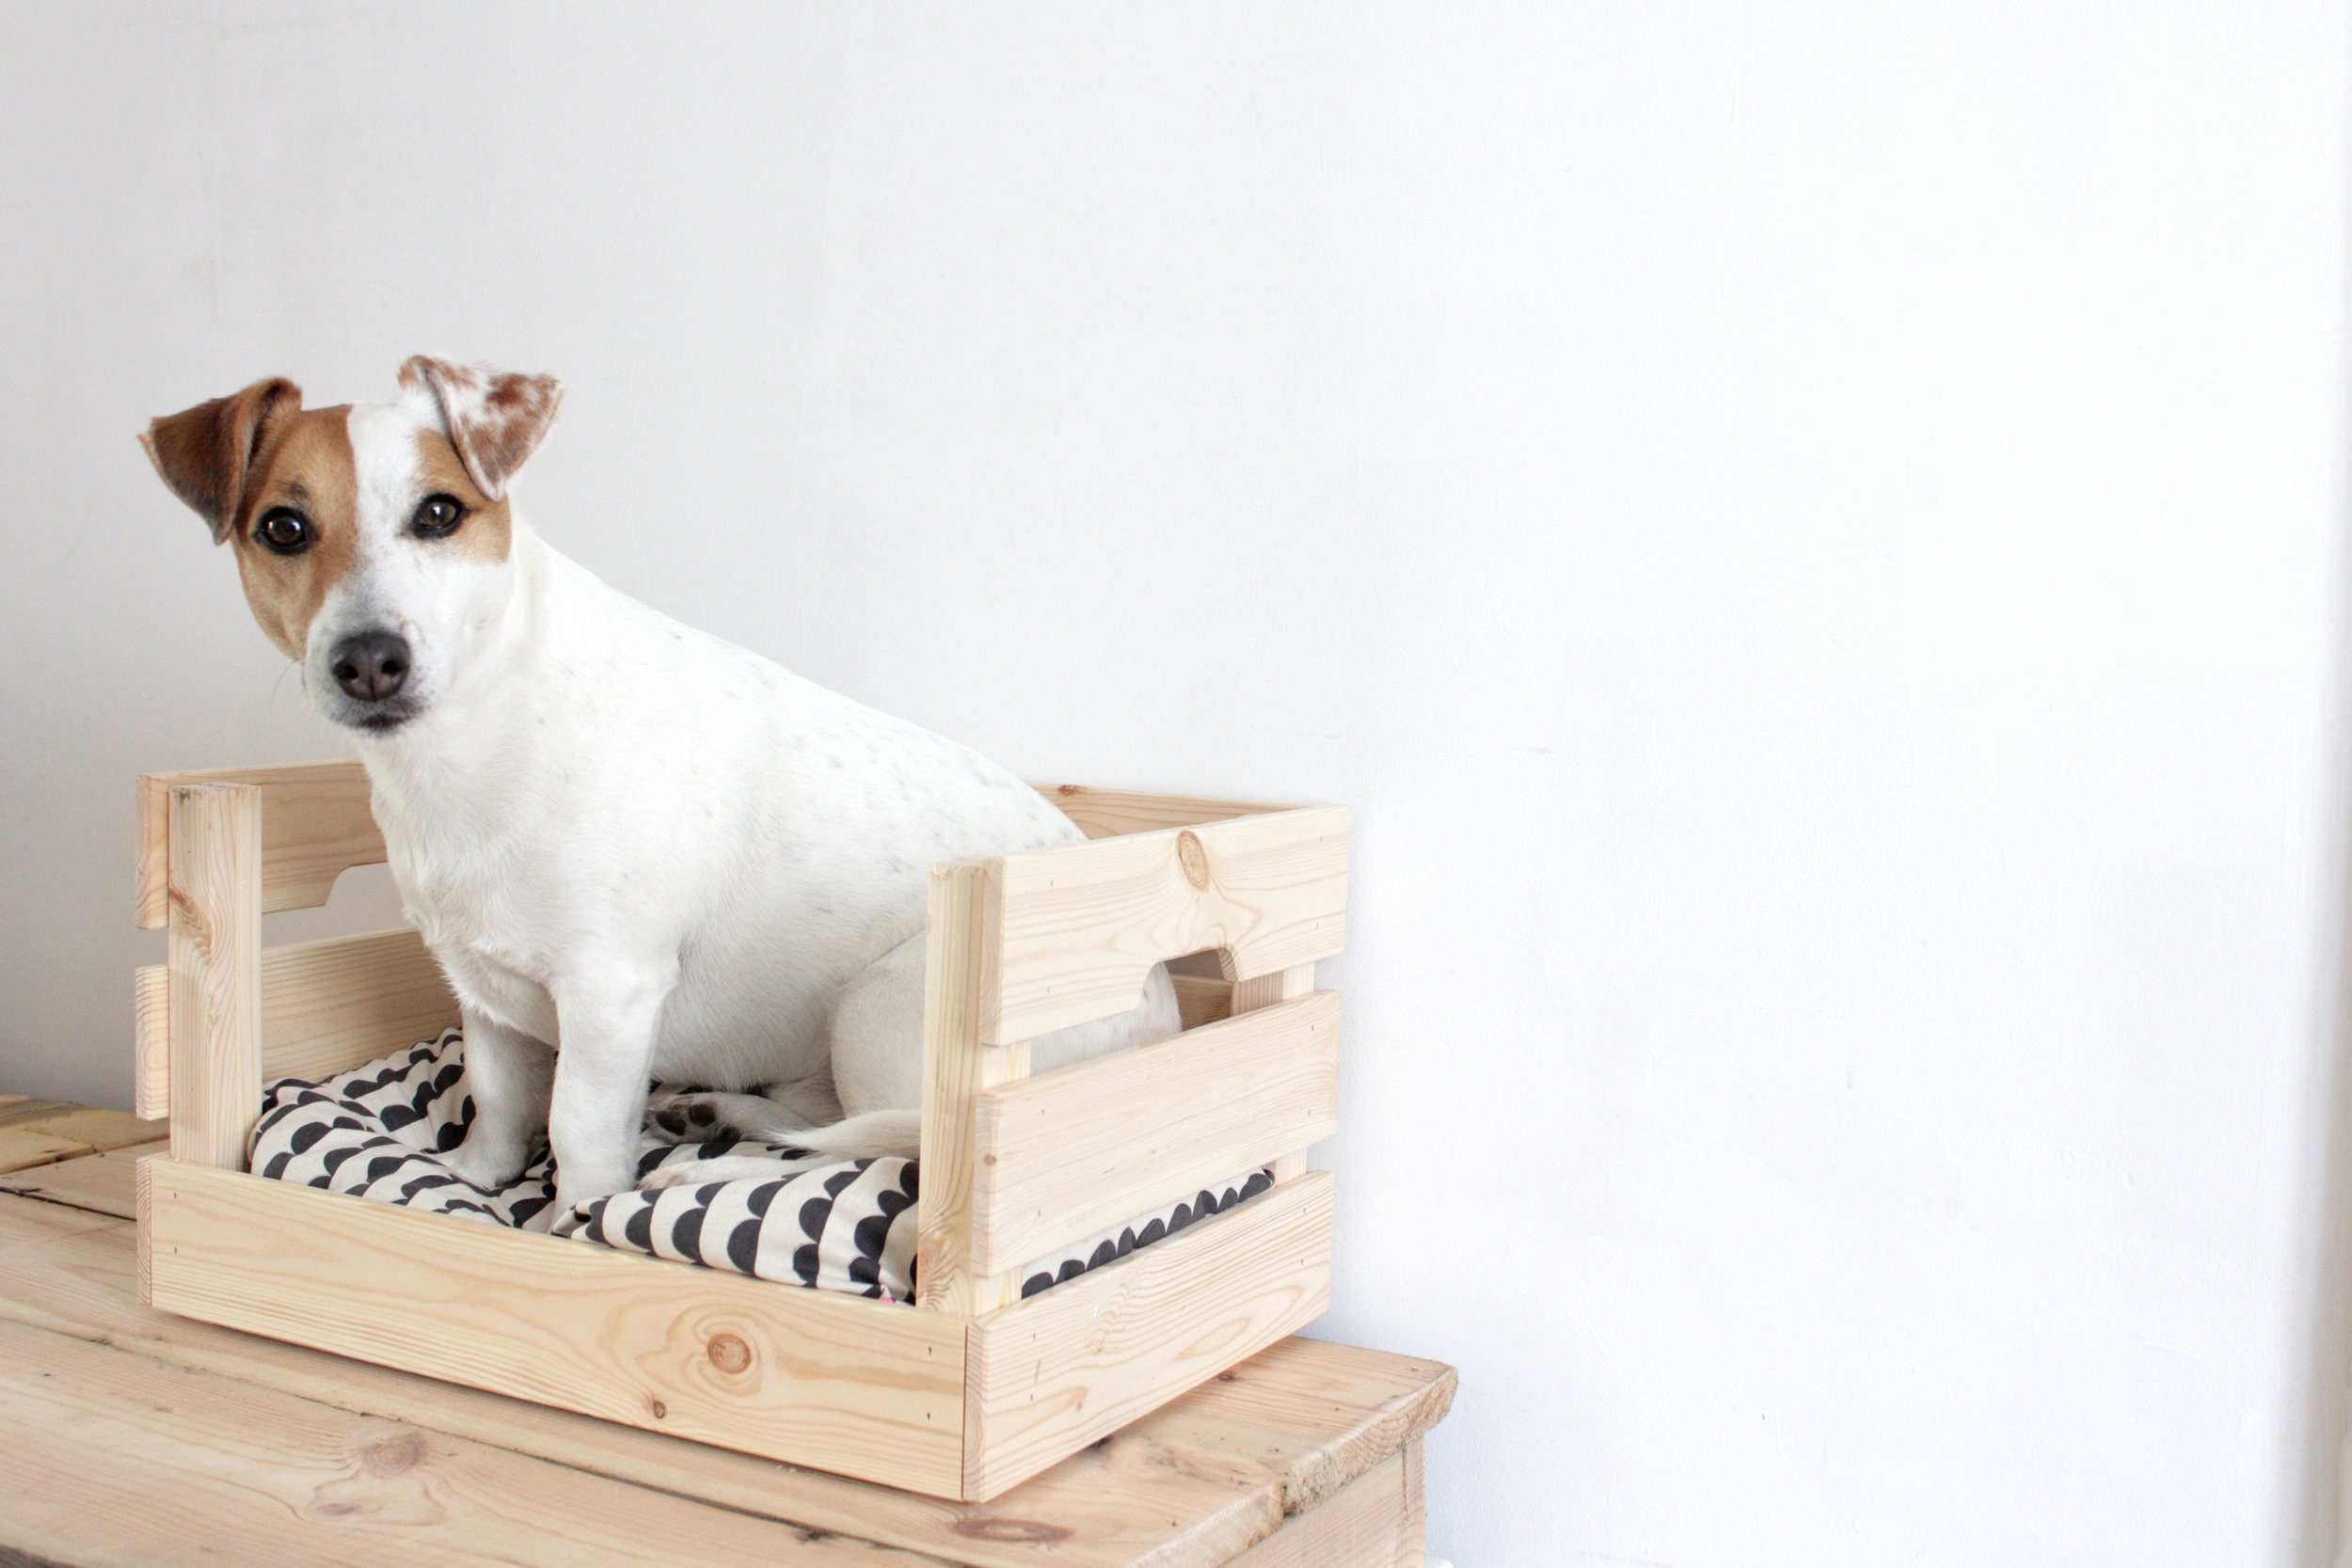 Ikea Hacks Küchentheke Ikea Hacks Dog Cat Shelves About A 50 Project Including The Bed